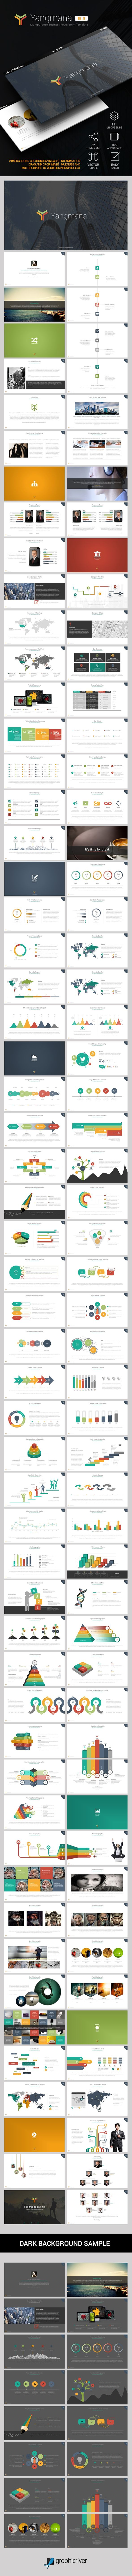 Yangmana Powerpoint Template - Business #PowerPoint #Templates Download here: https://graphicriver.net/item/yangmana-powerpoint-template/19575687?ref=alena994